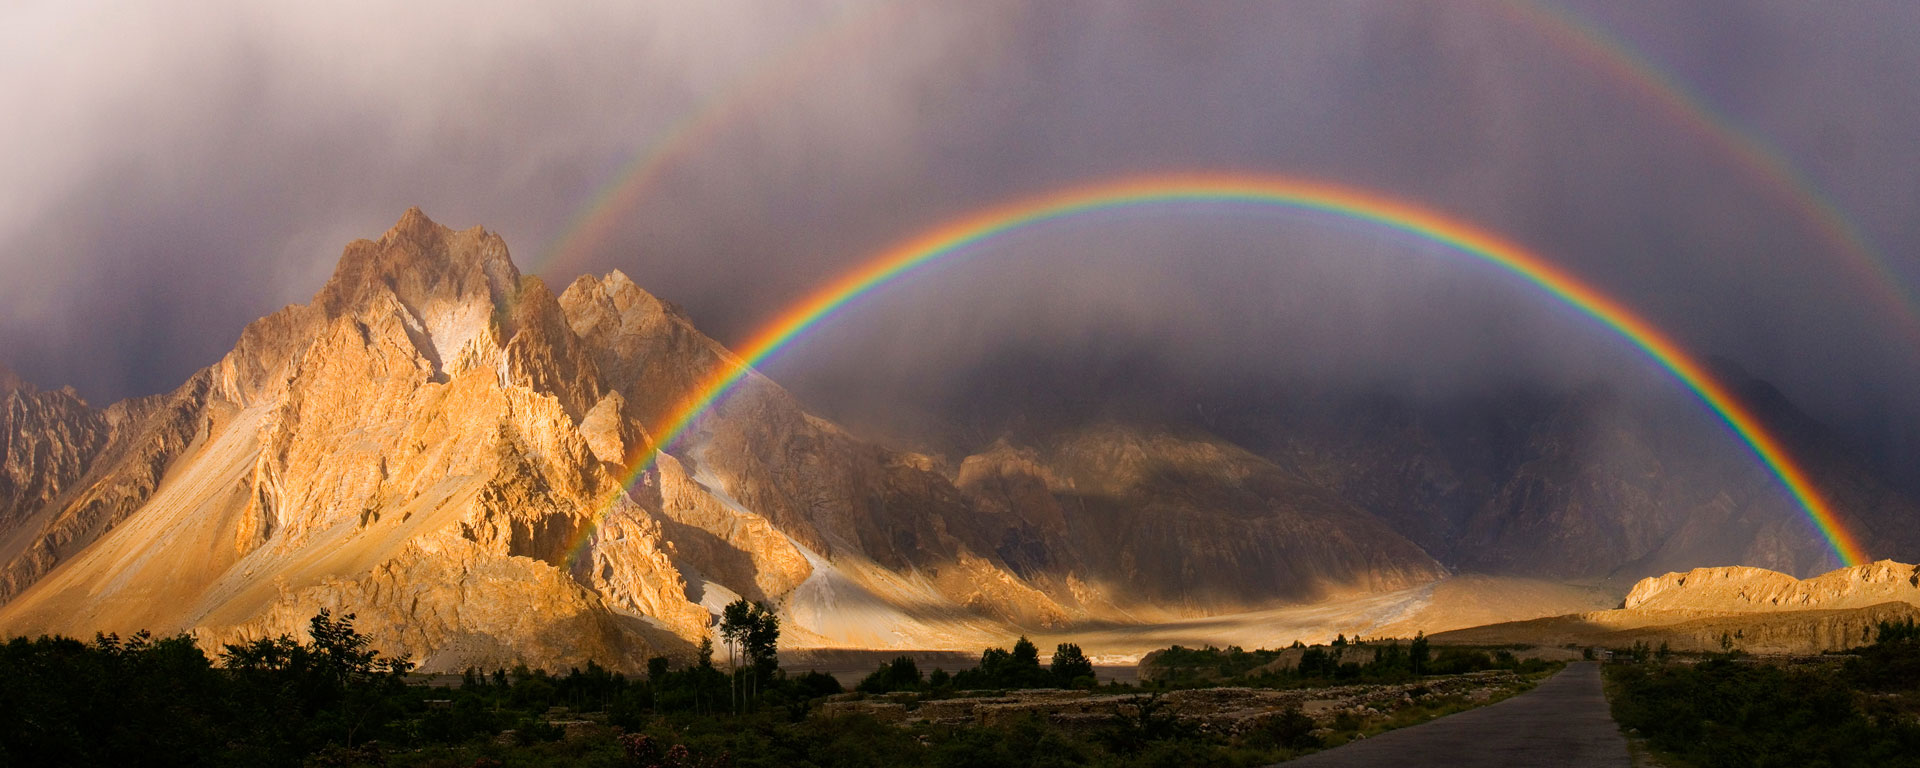 Rainbow over the Khunjerab River, Passu, Pakistan